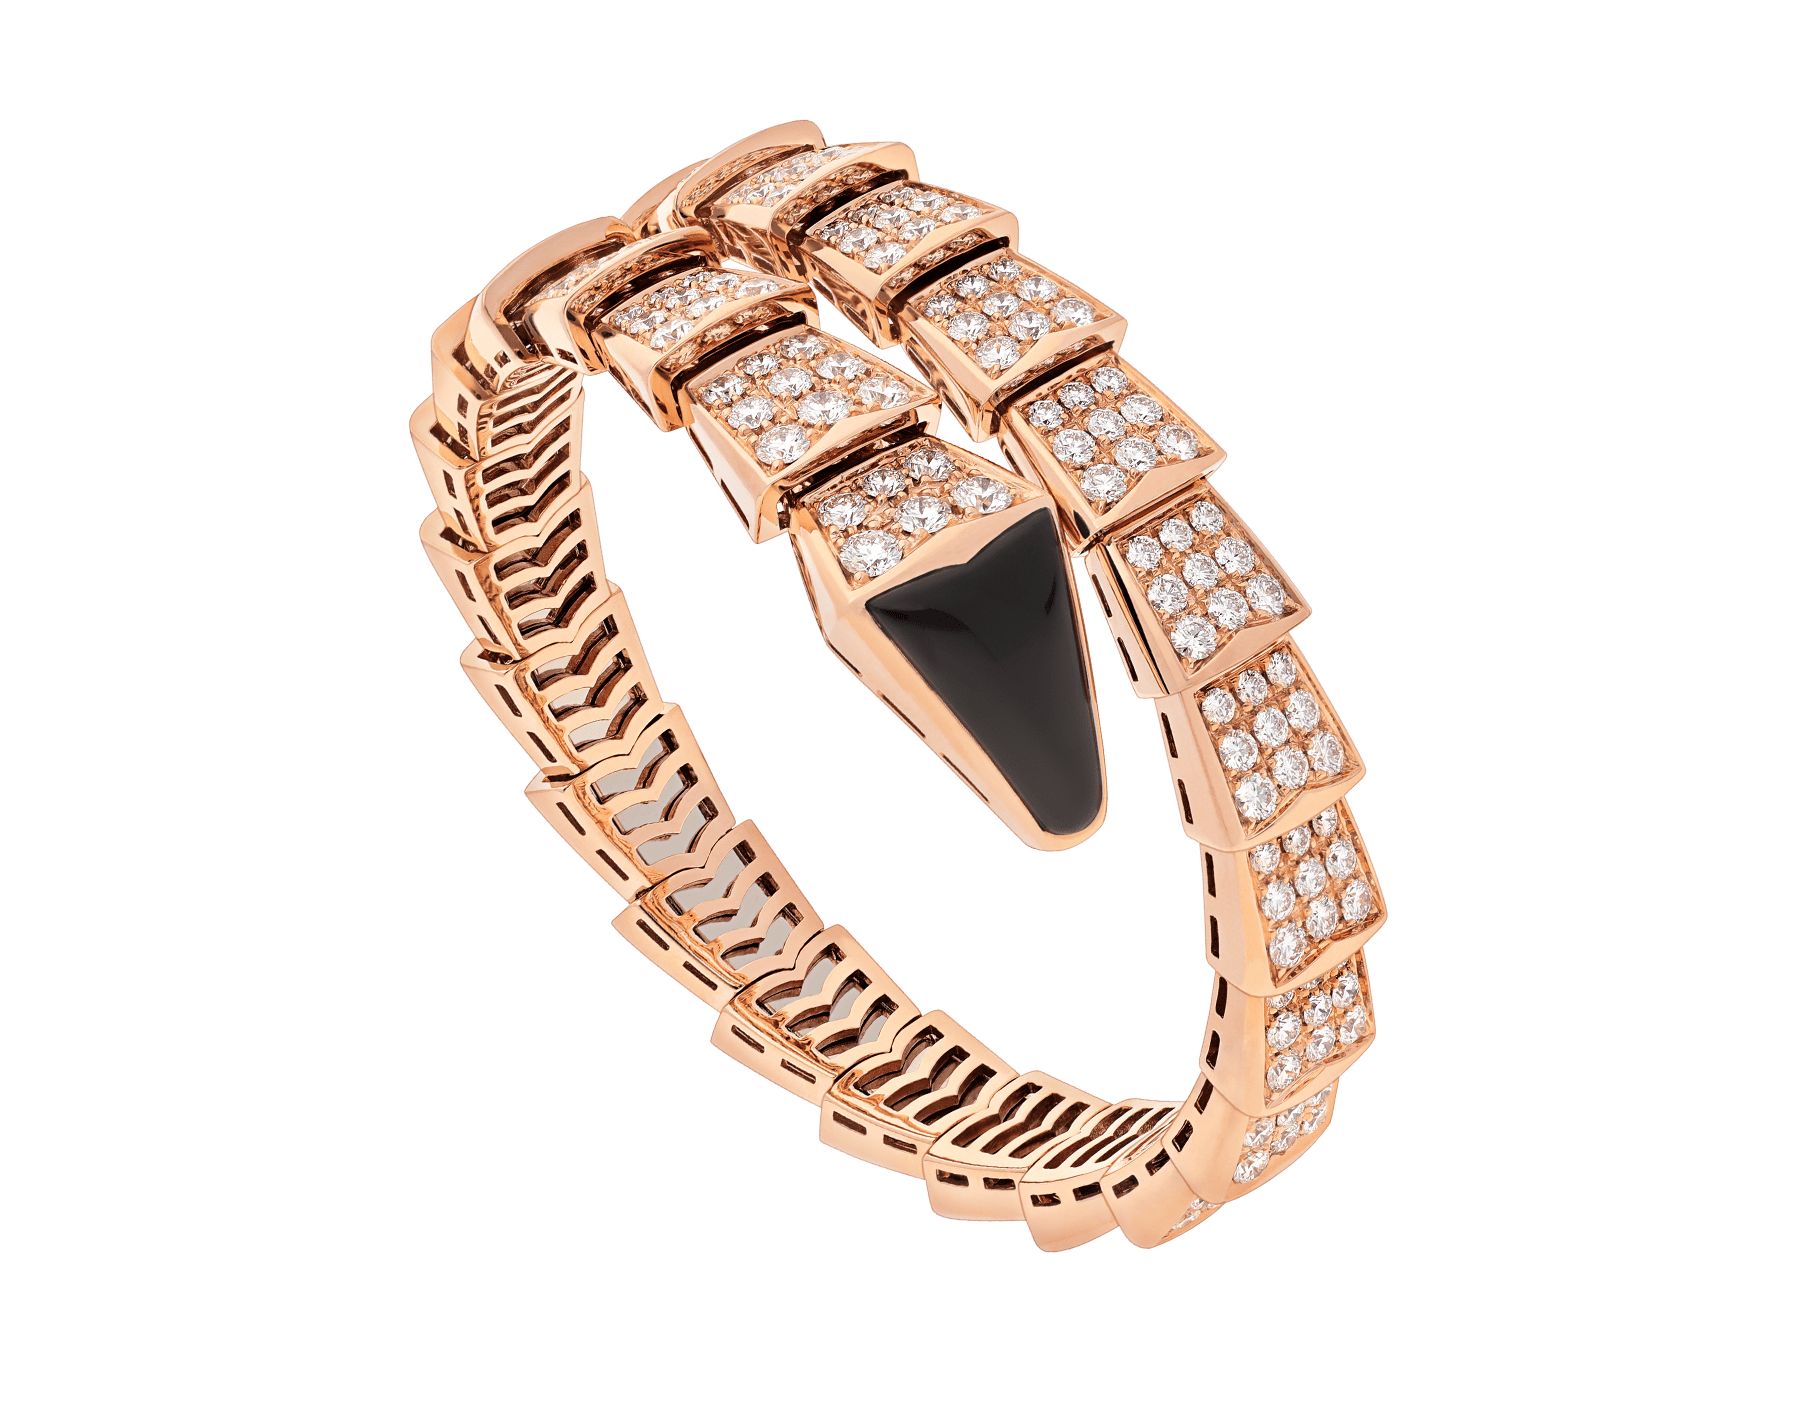 Serpenti one-coil bracelet in 18 kt rose gold, set with full pavé diamonds and an onyx element on the head. BR855196 image 1